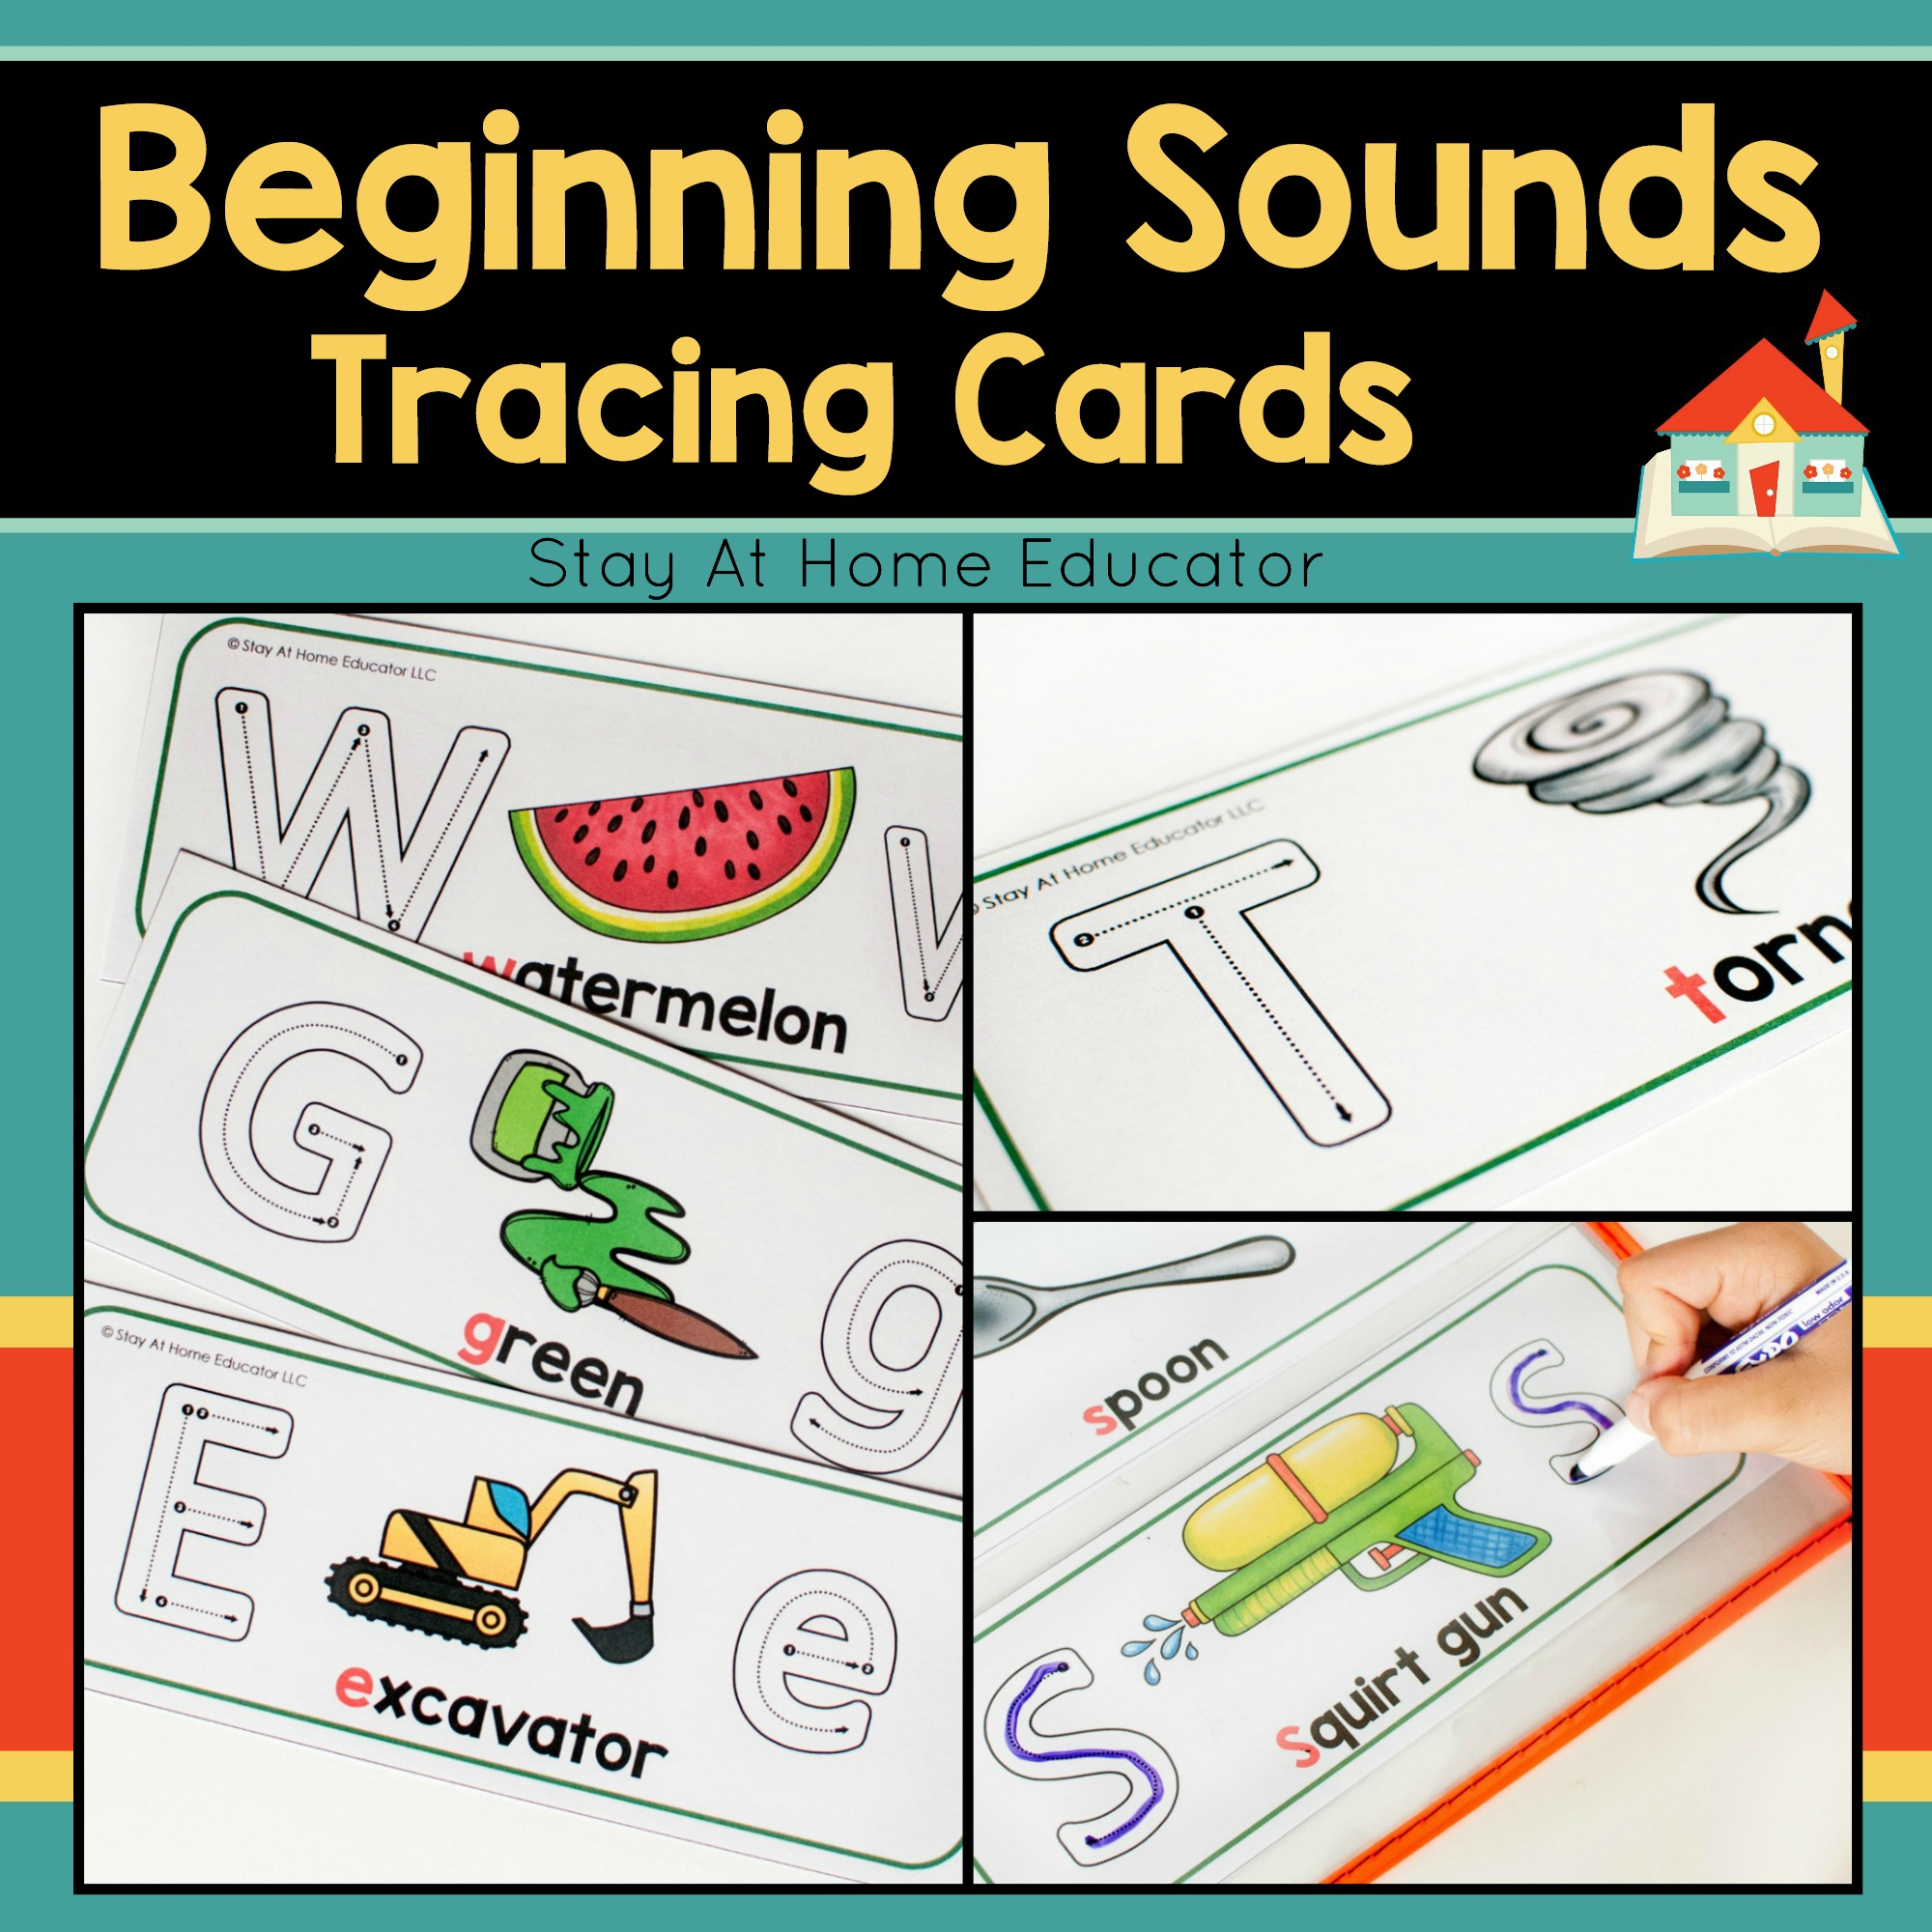 Beginning Sounds Tracing Cards